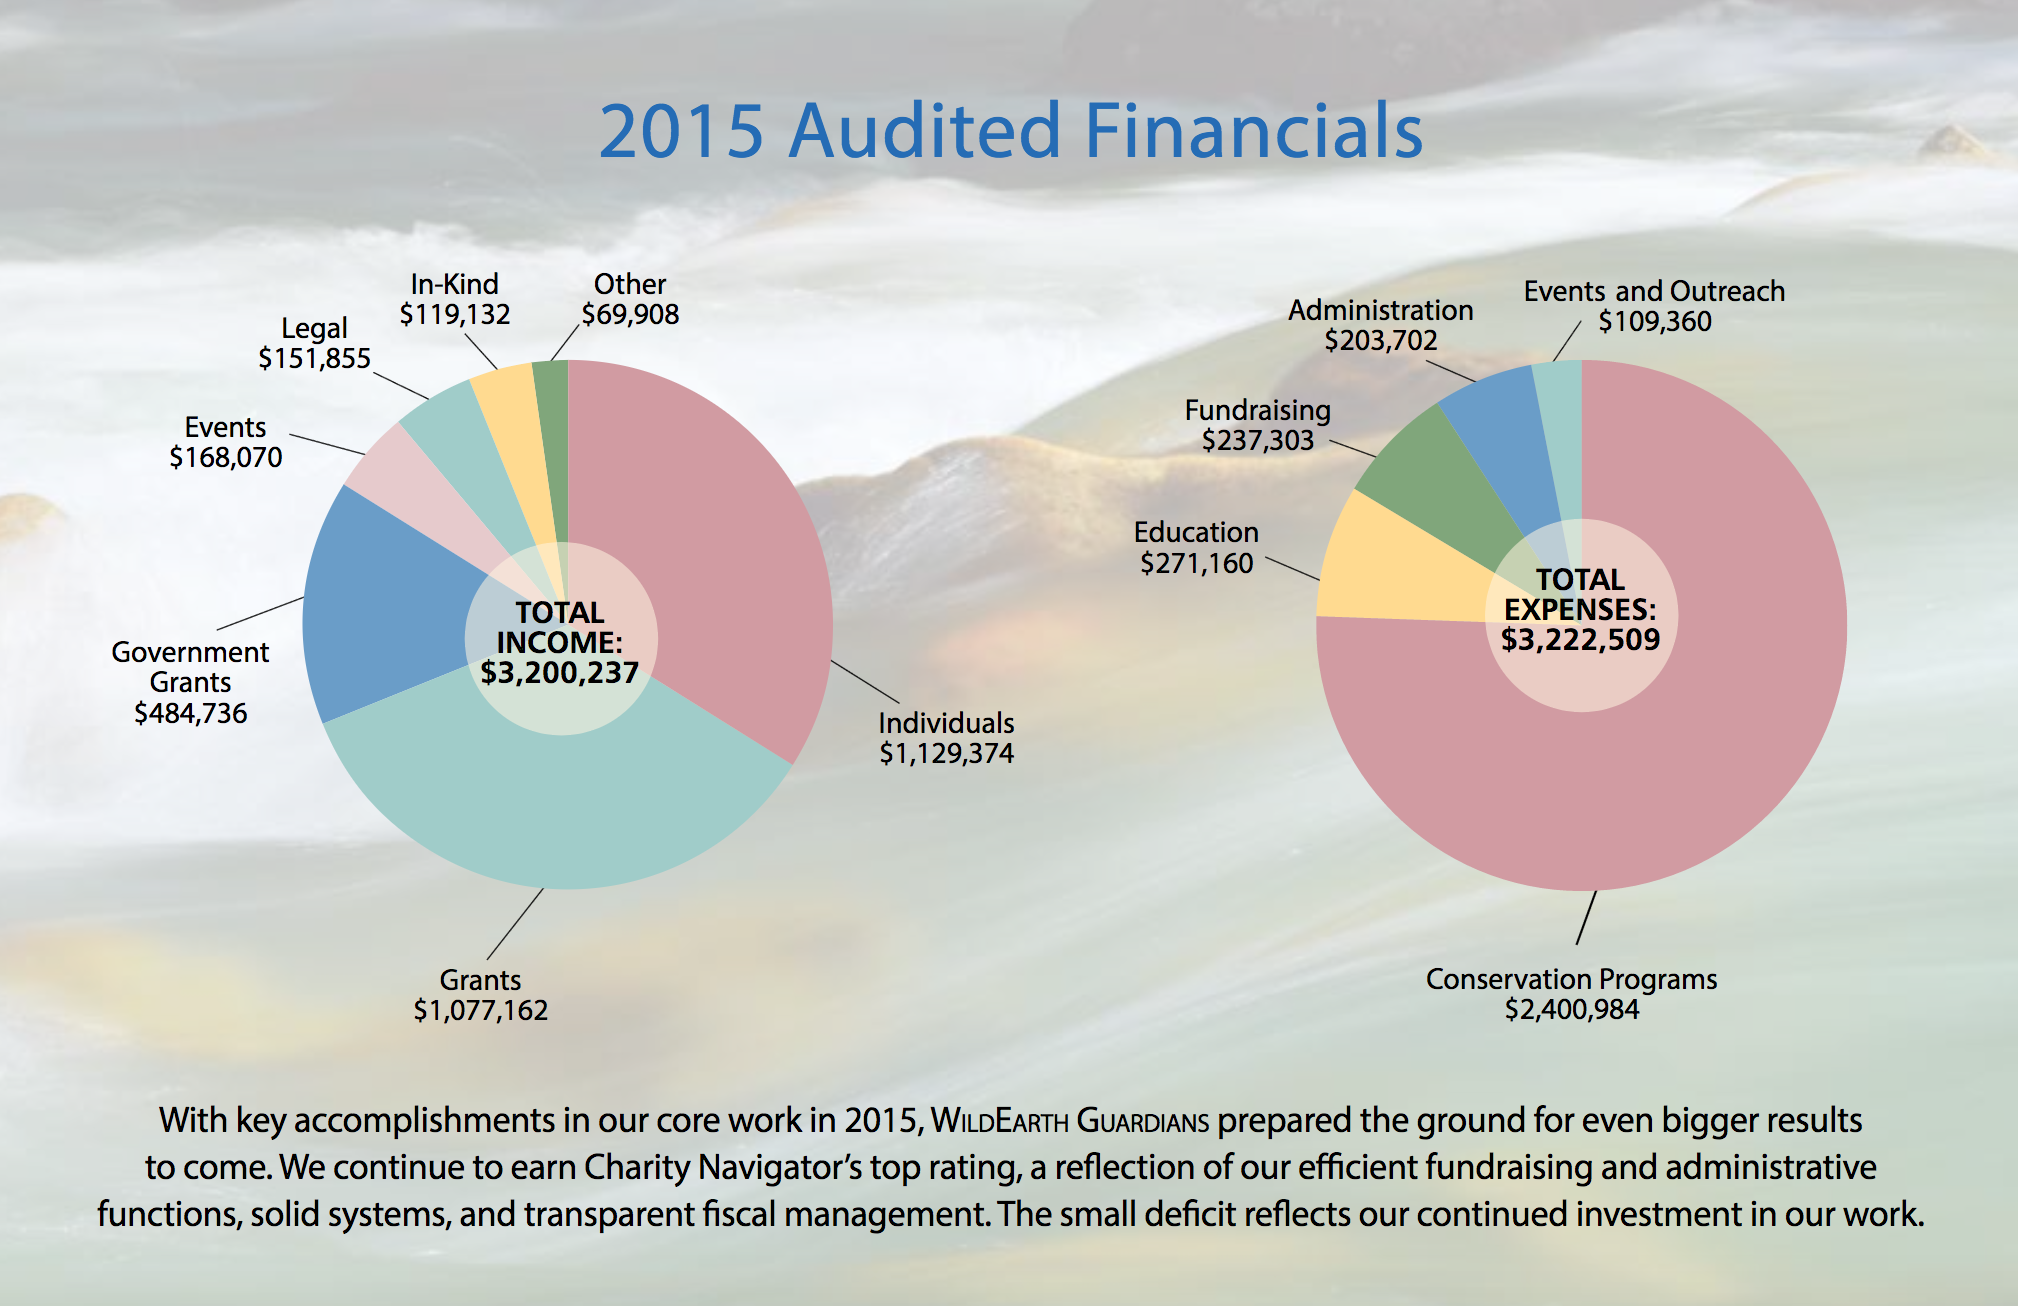 2015 Audited Financial Chart